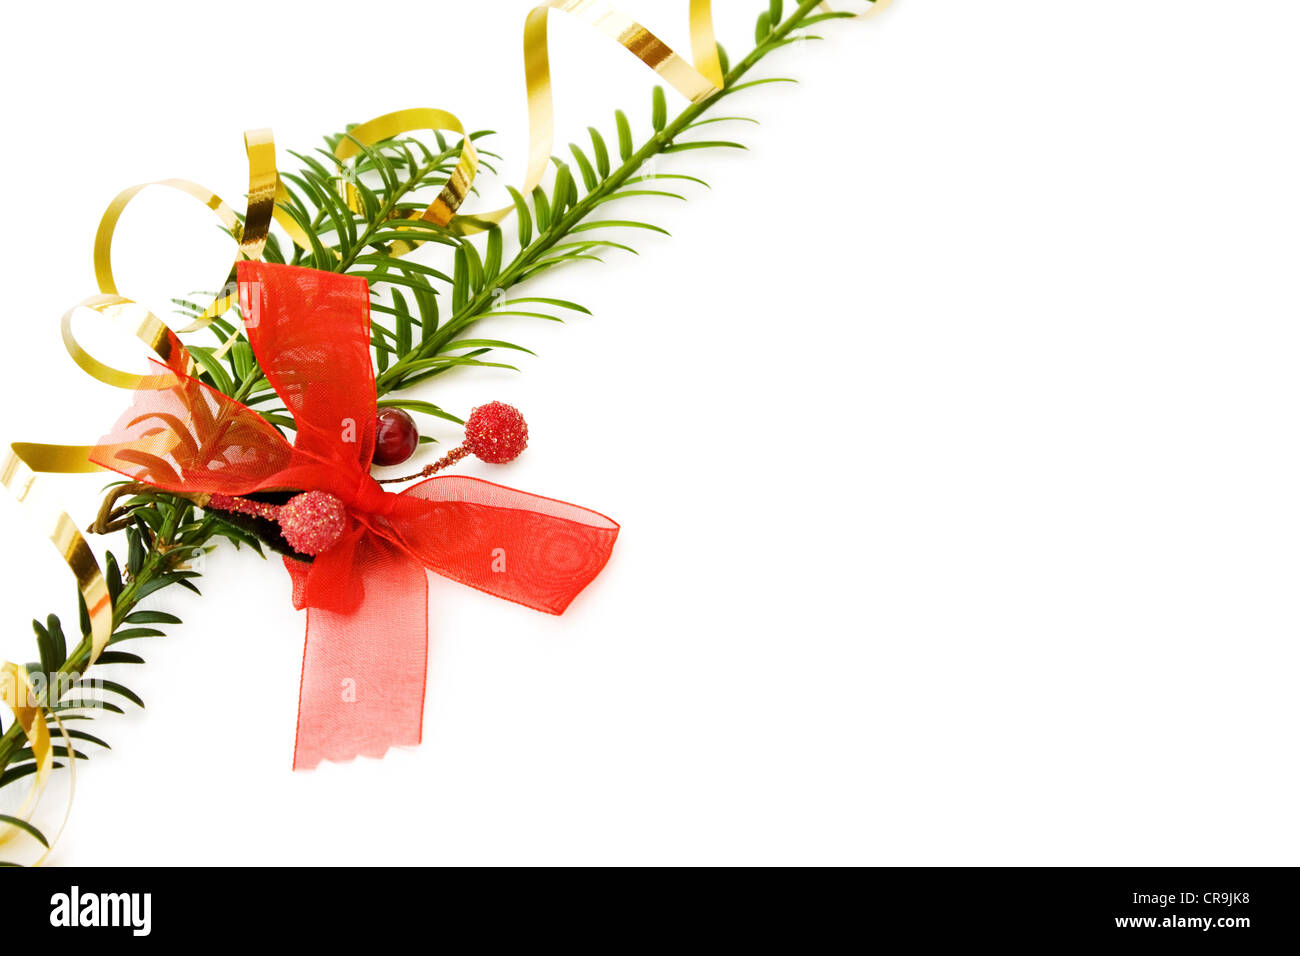 Christmas border with pine tree branch and festive red ribbons decorations. Isolated on white background. - Stock Image